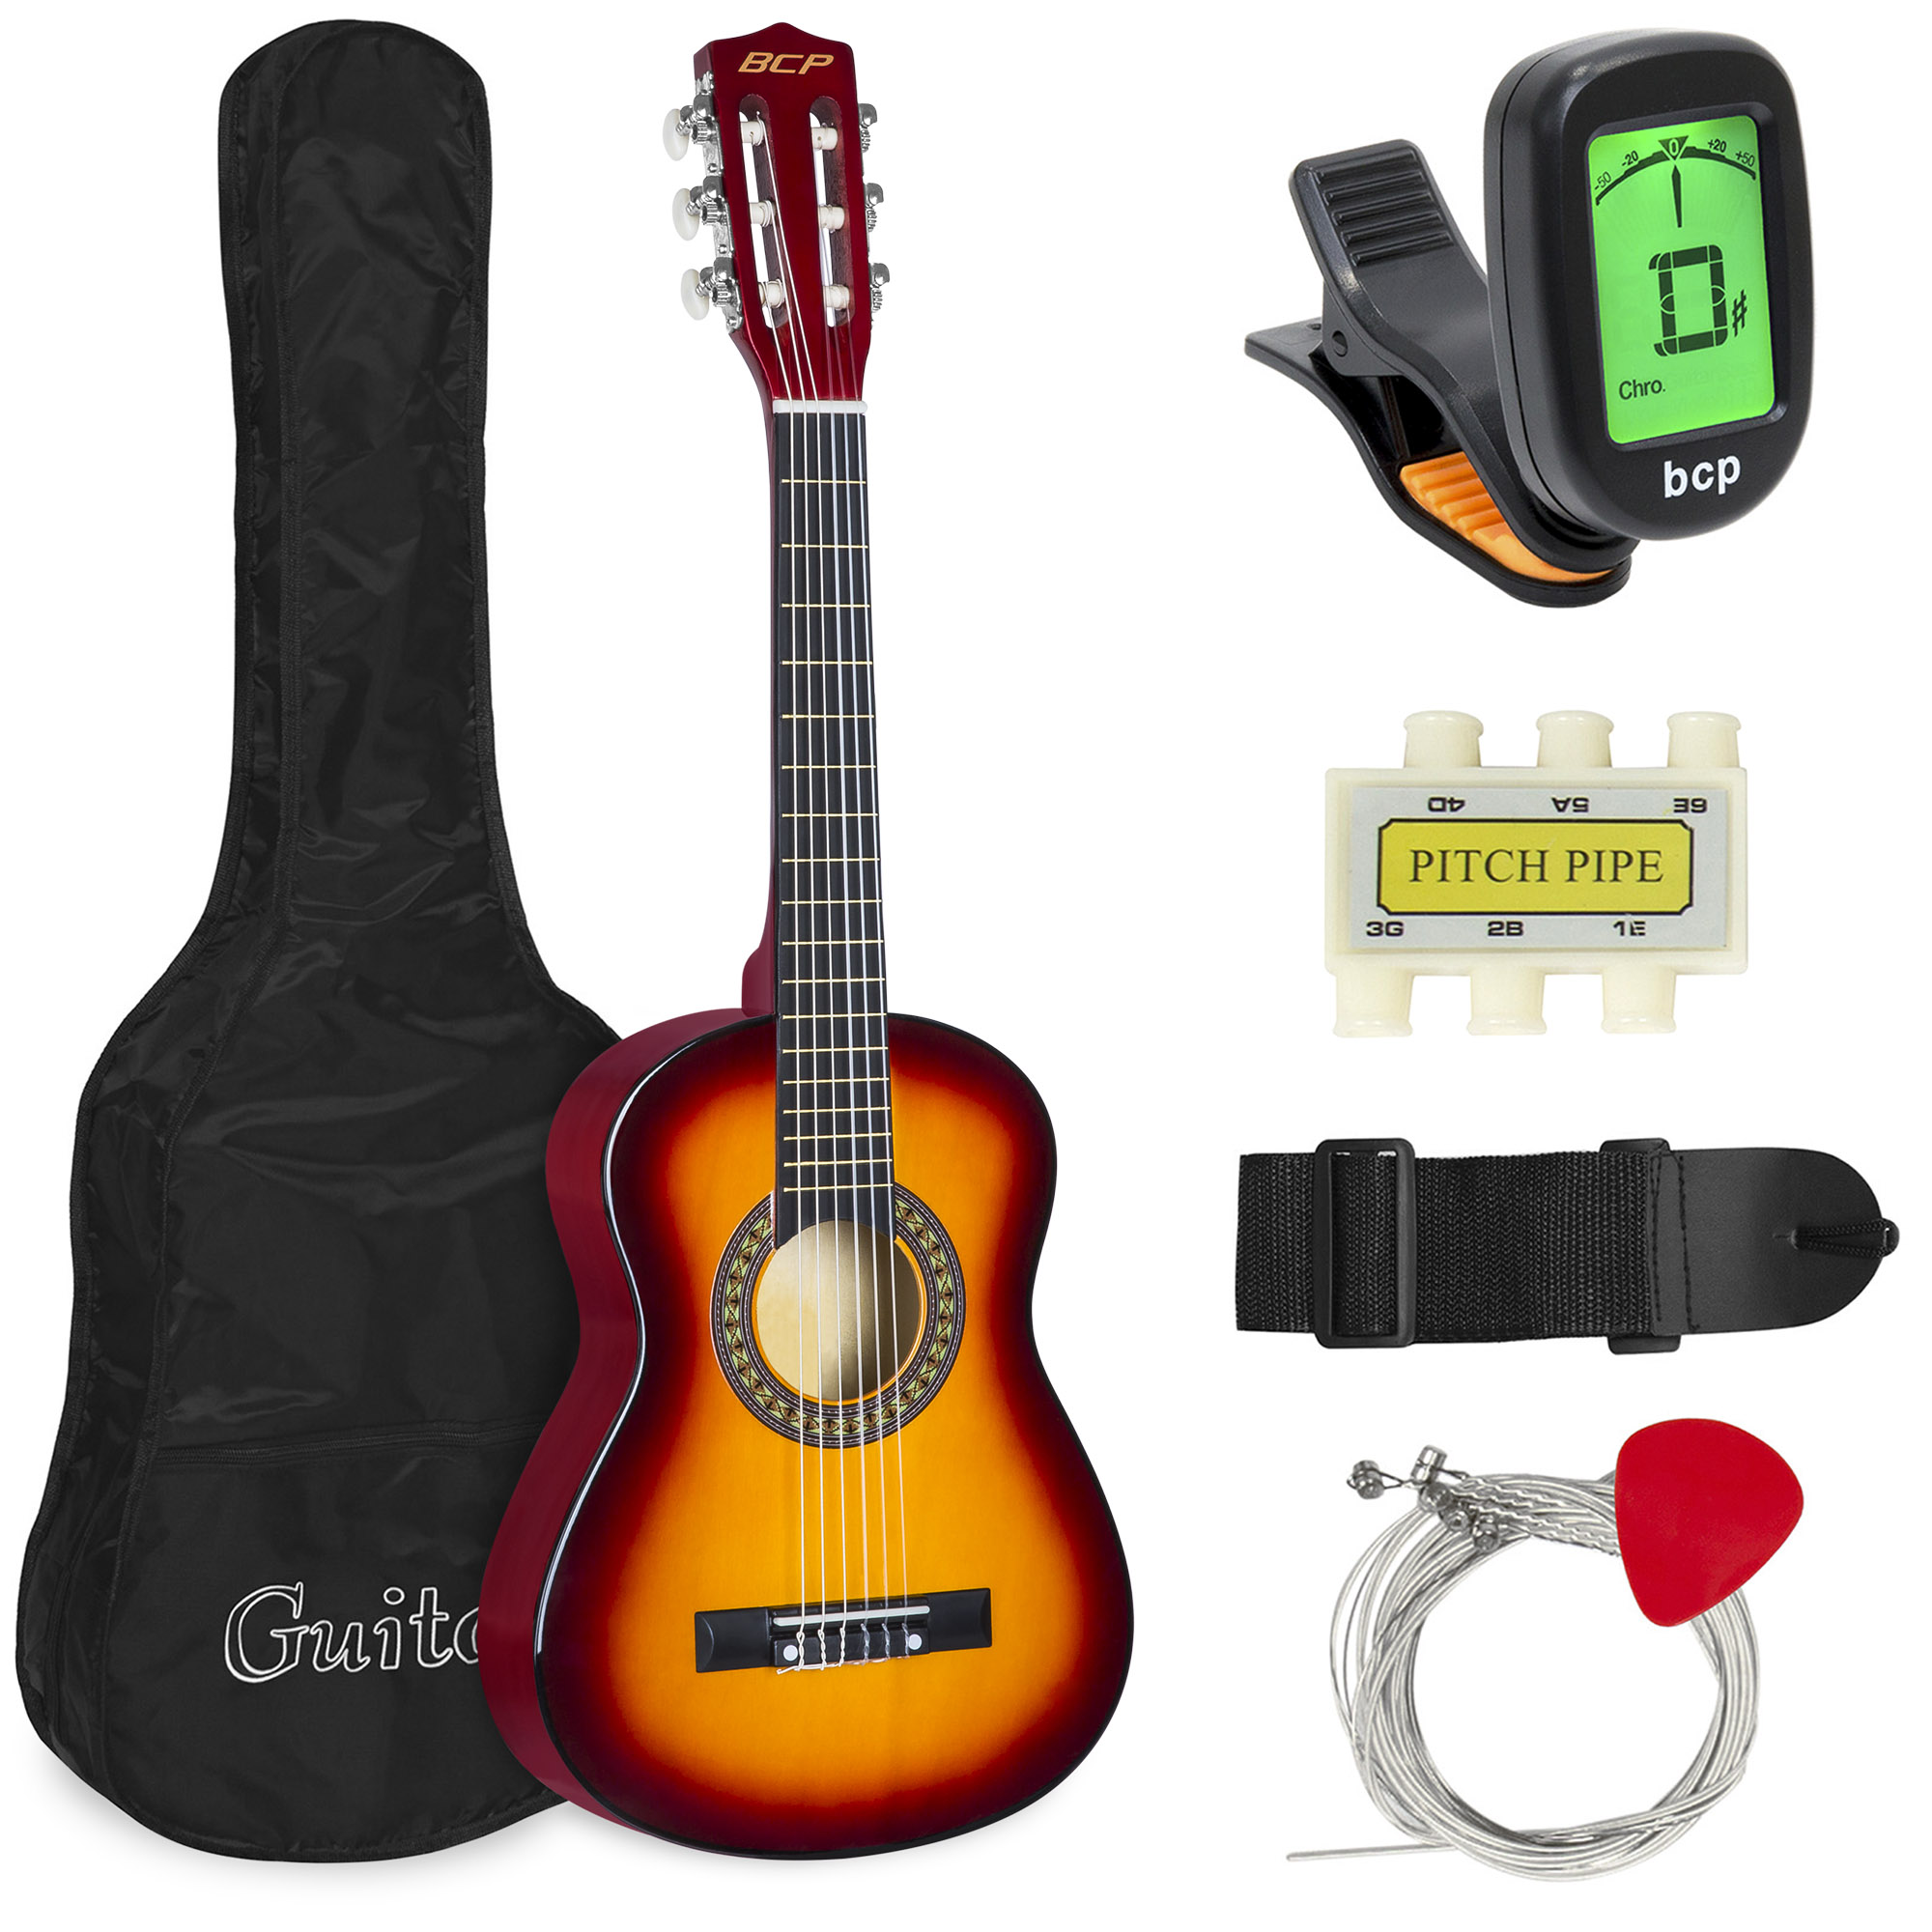 Best Choice Products 30in Kids Classical Acoustic Guitar Complete Beginners Set, Musical Instrument Kit w/ Carry Bag, Picks, E-Tuner, Strap - Sunburst